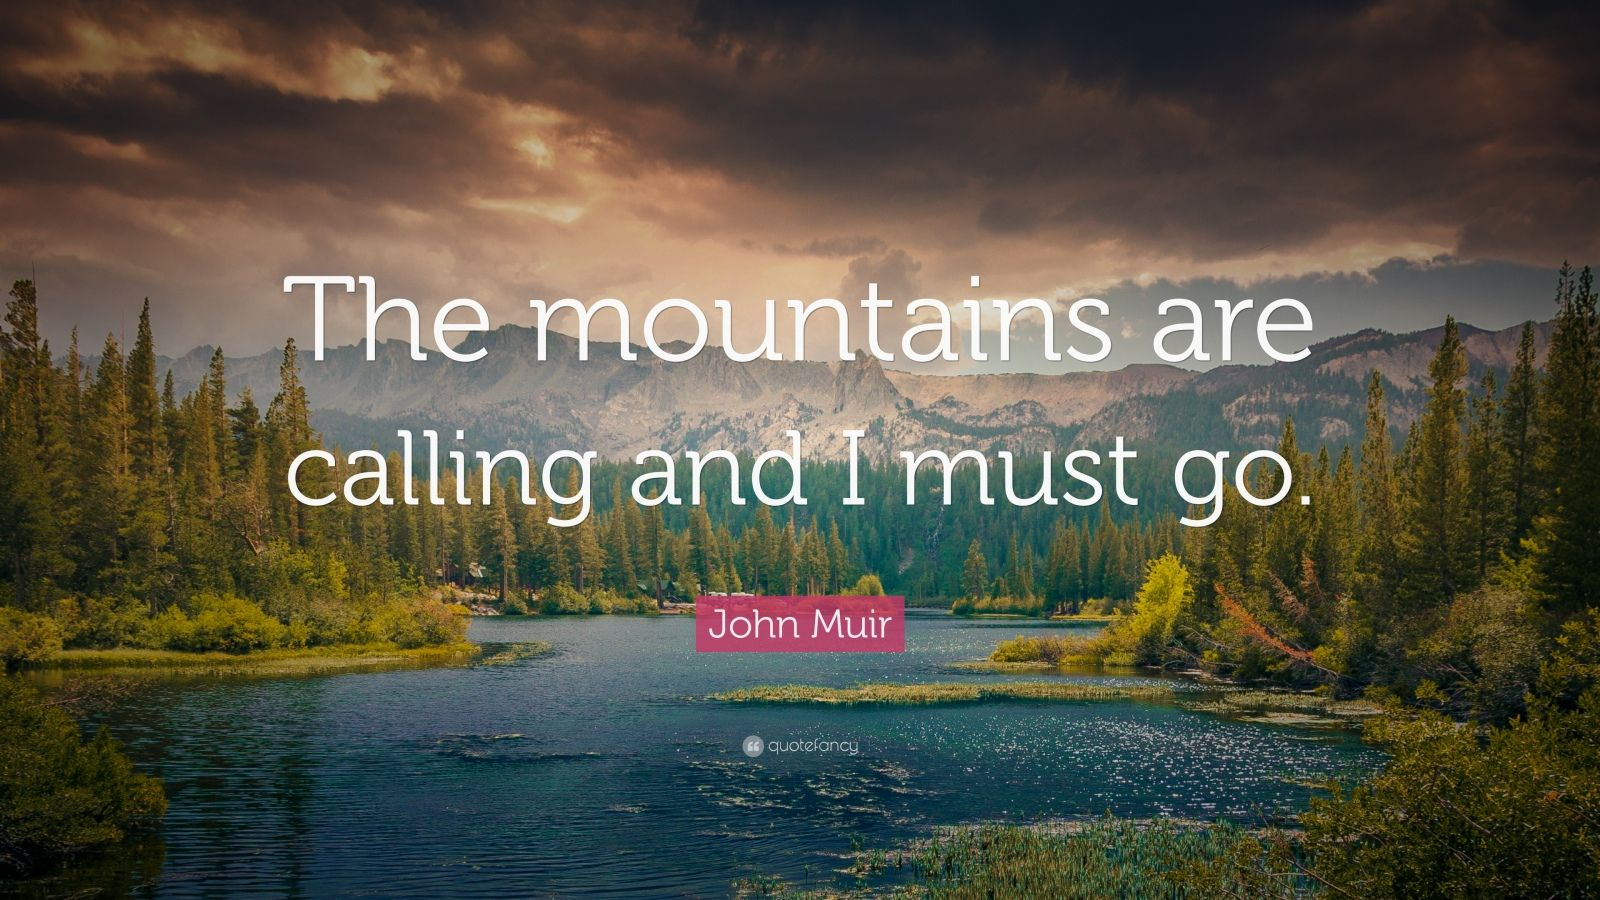 Thoreau Quote Phone Wallpaper John Muir Quote The Mountains Are Calling And I Must Go